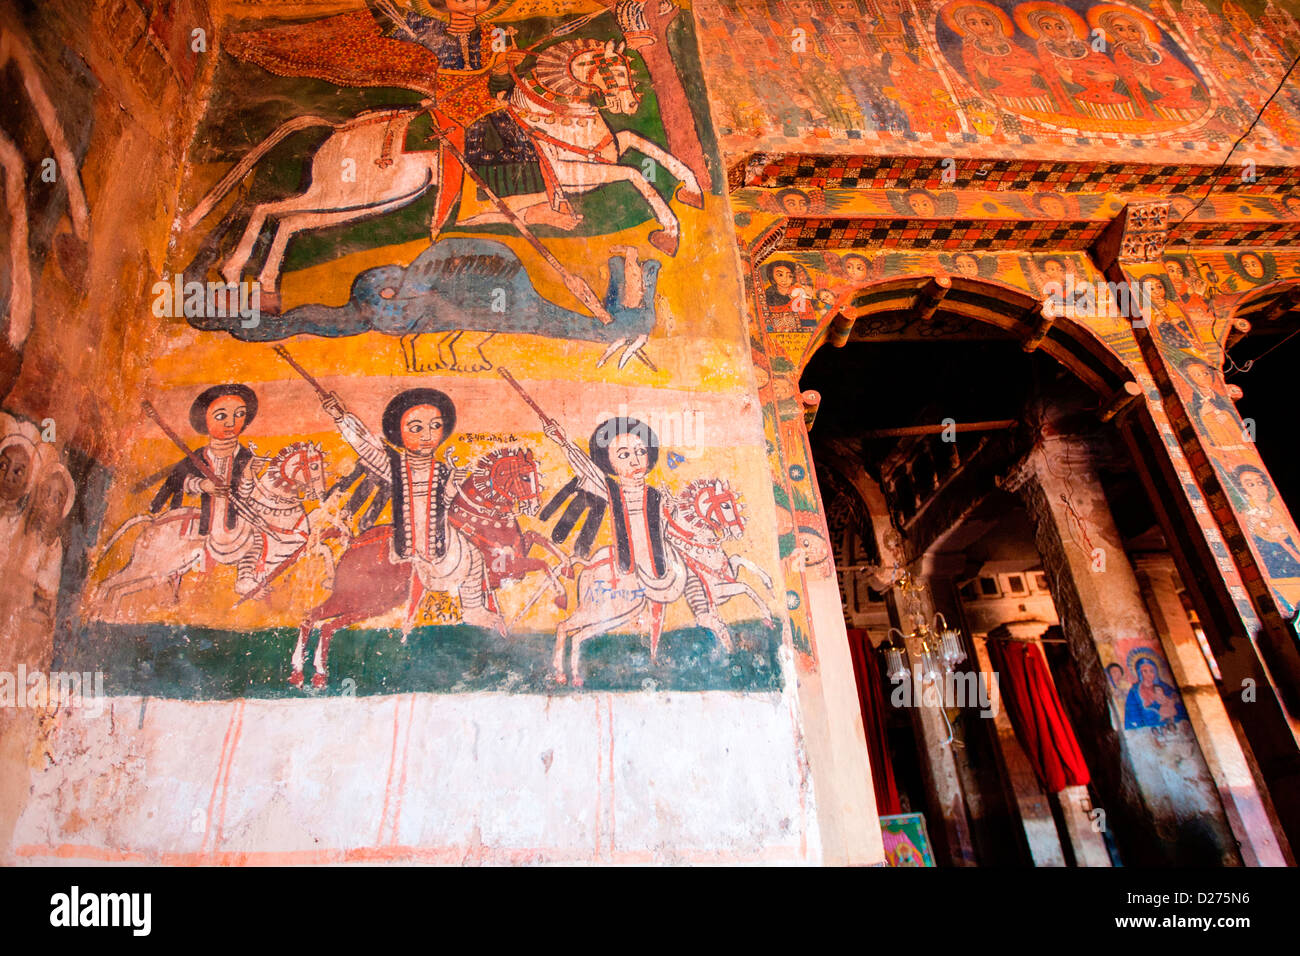 17th century paintings at the rock-hewn church of Abraha Atsbeha in the Gheralta Cluster, Tigray in Northern Ethiopia, - Stock Image